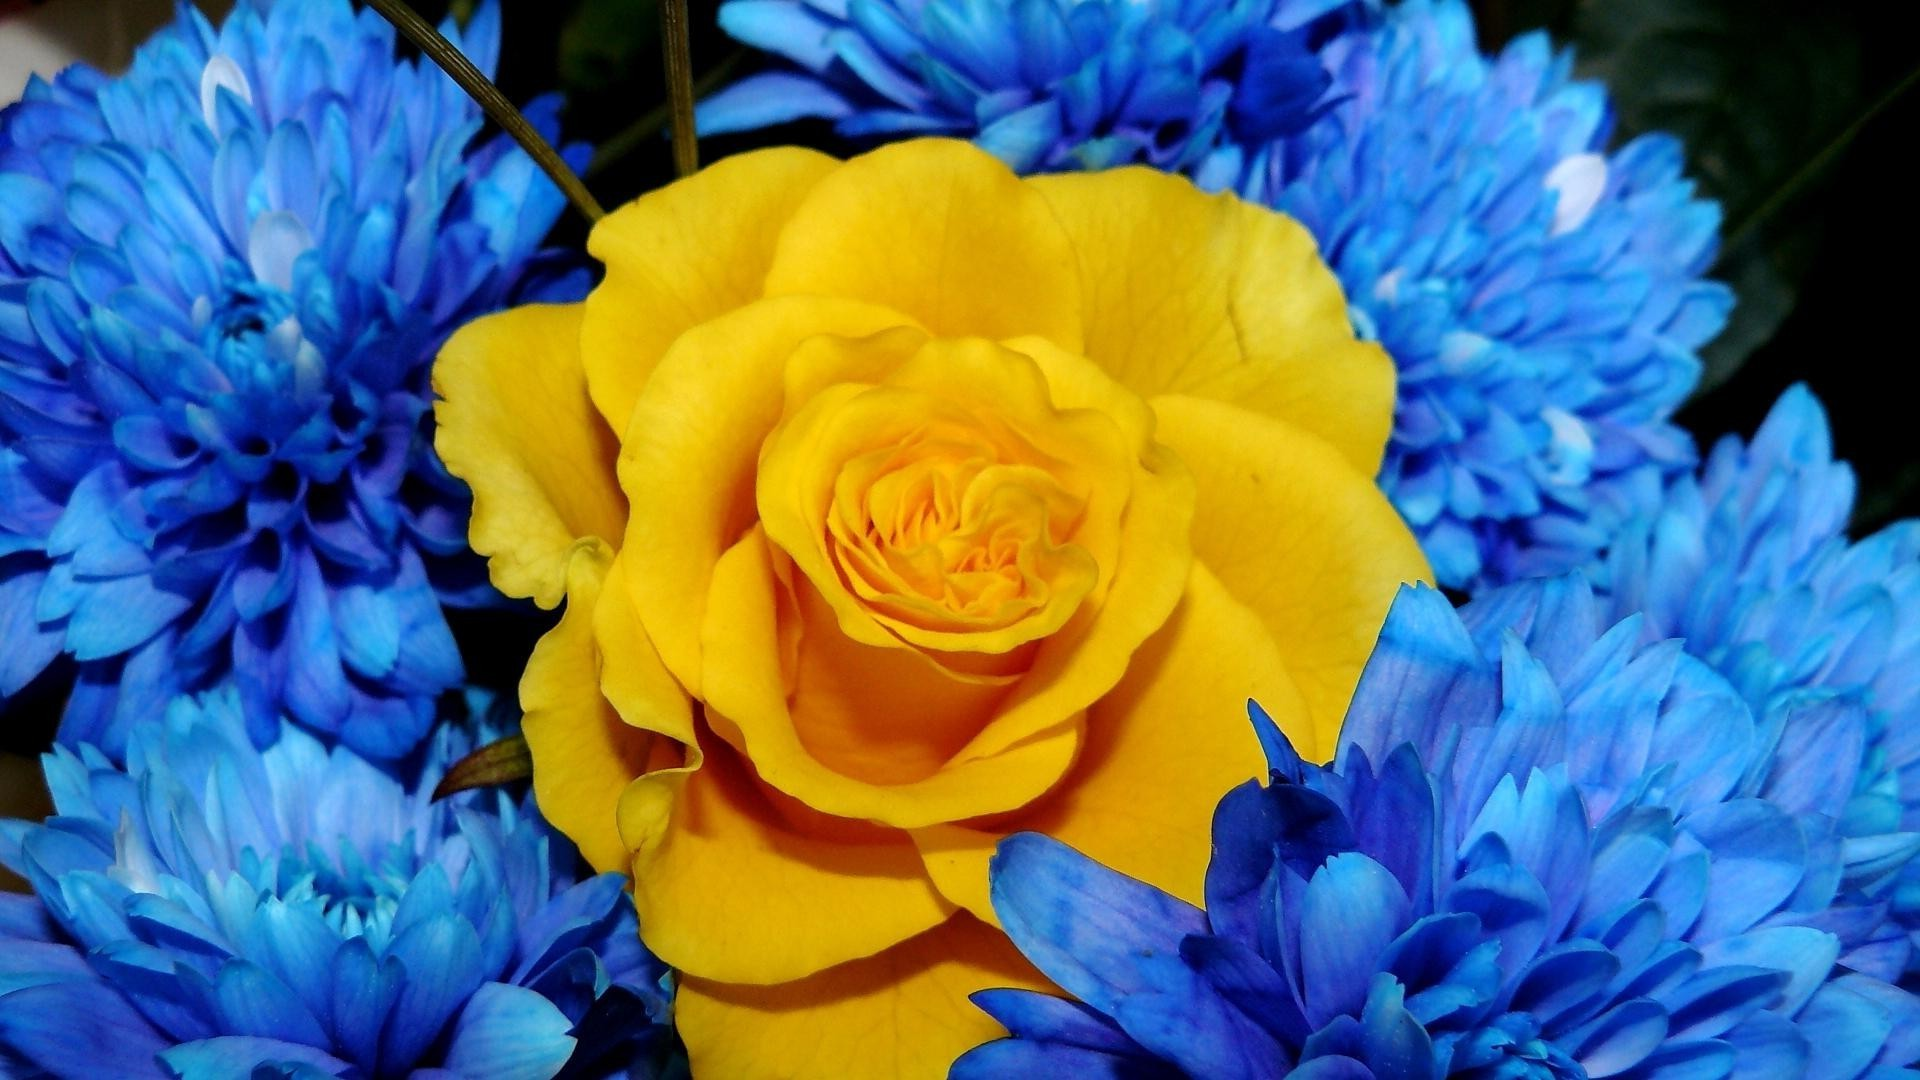 Yellow rose surrounded by blue flowers